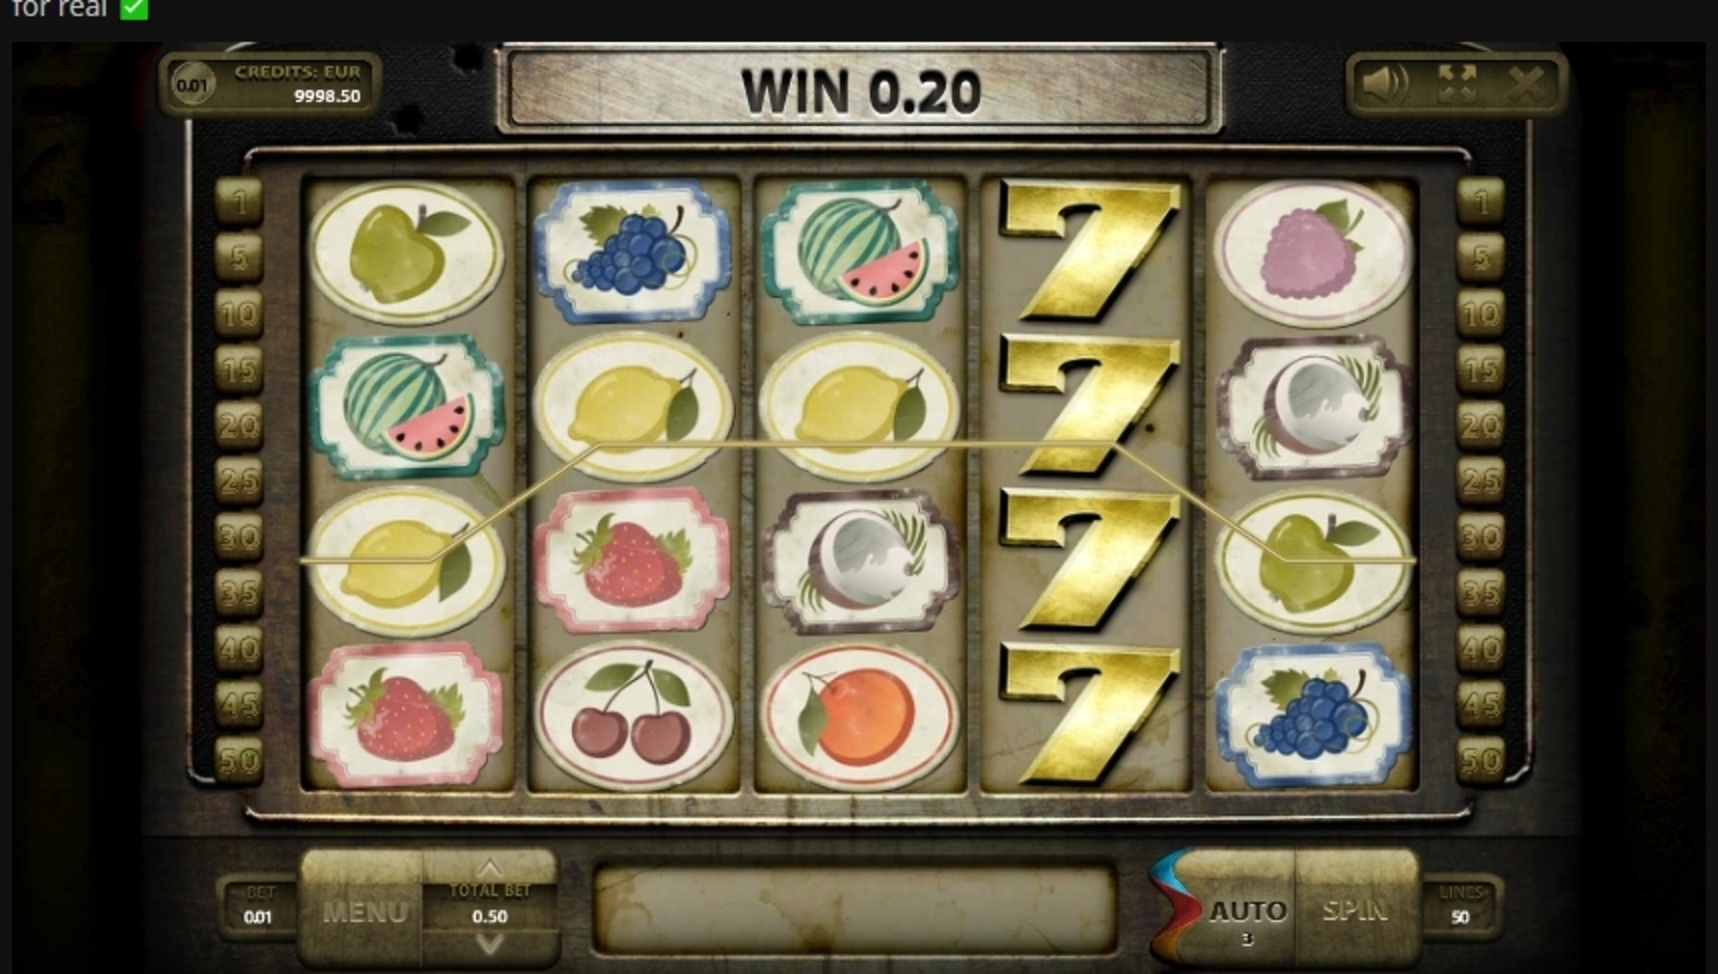 Win Money in Wild Fruits (Endorphina) Free Slot Game by Endorphina